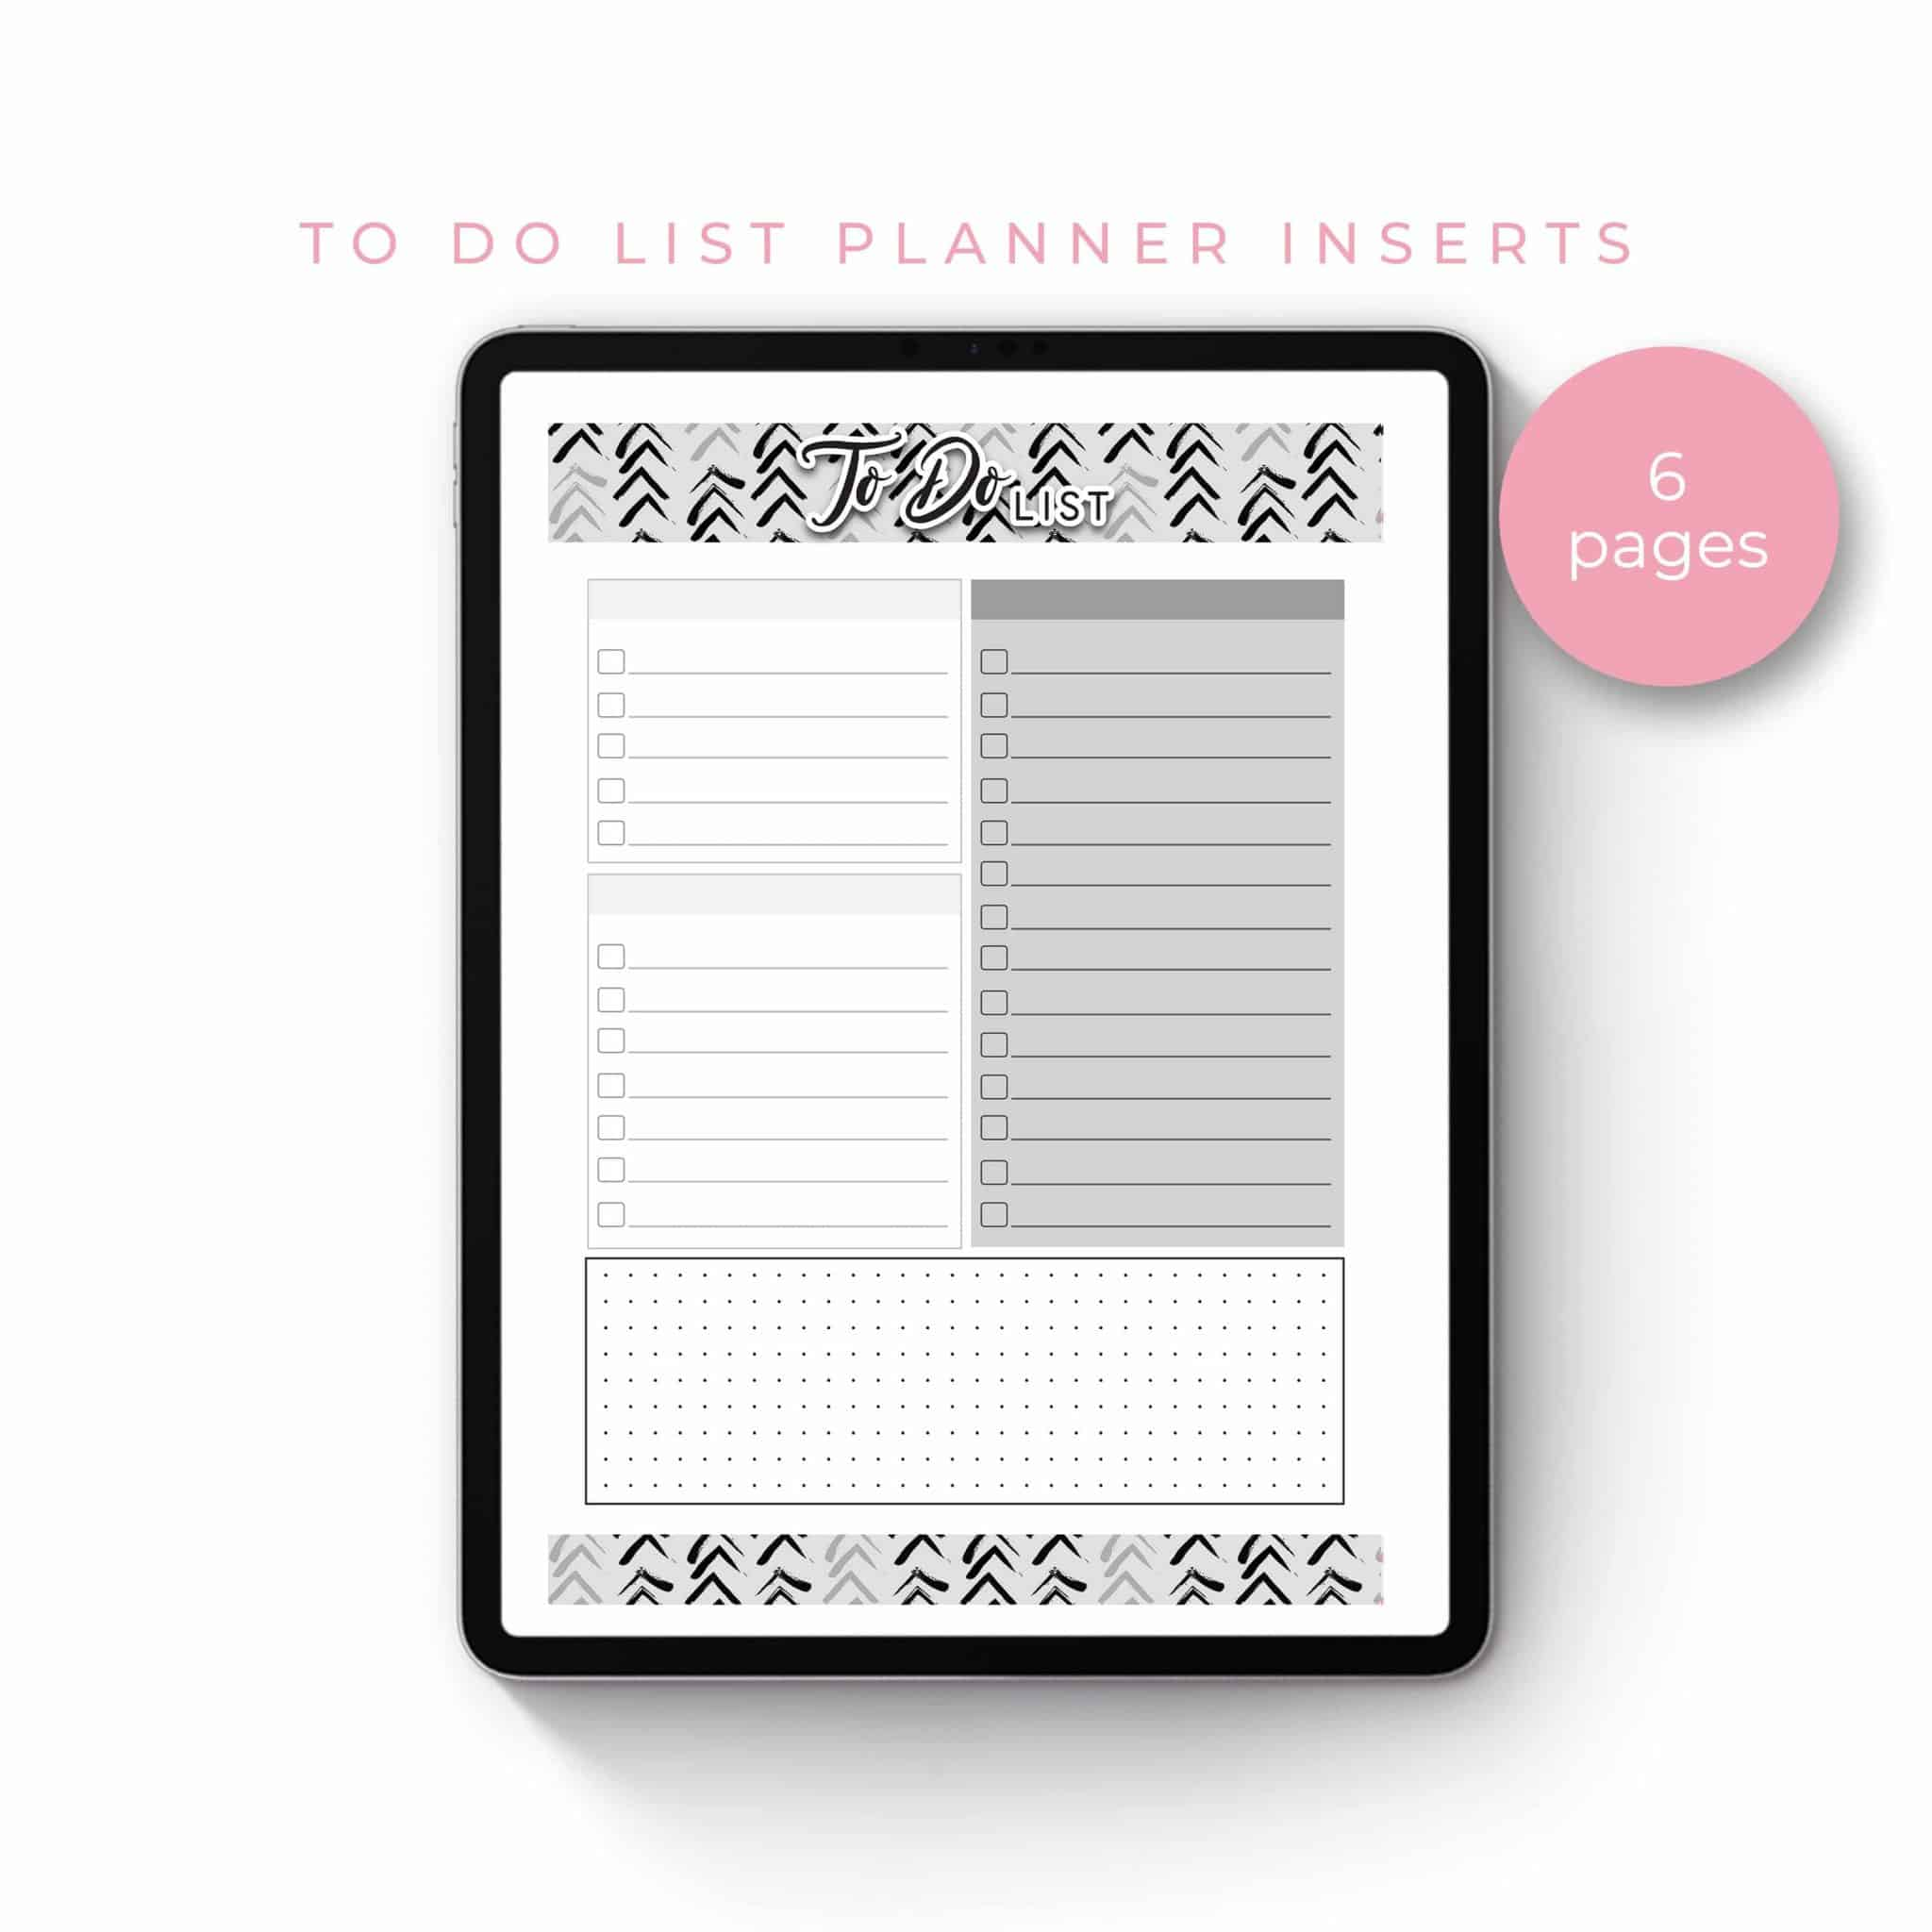 To Do List Planner Inserts – Black and White